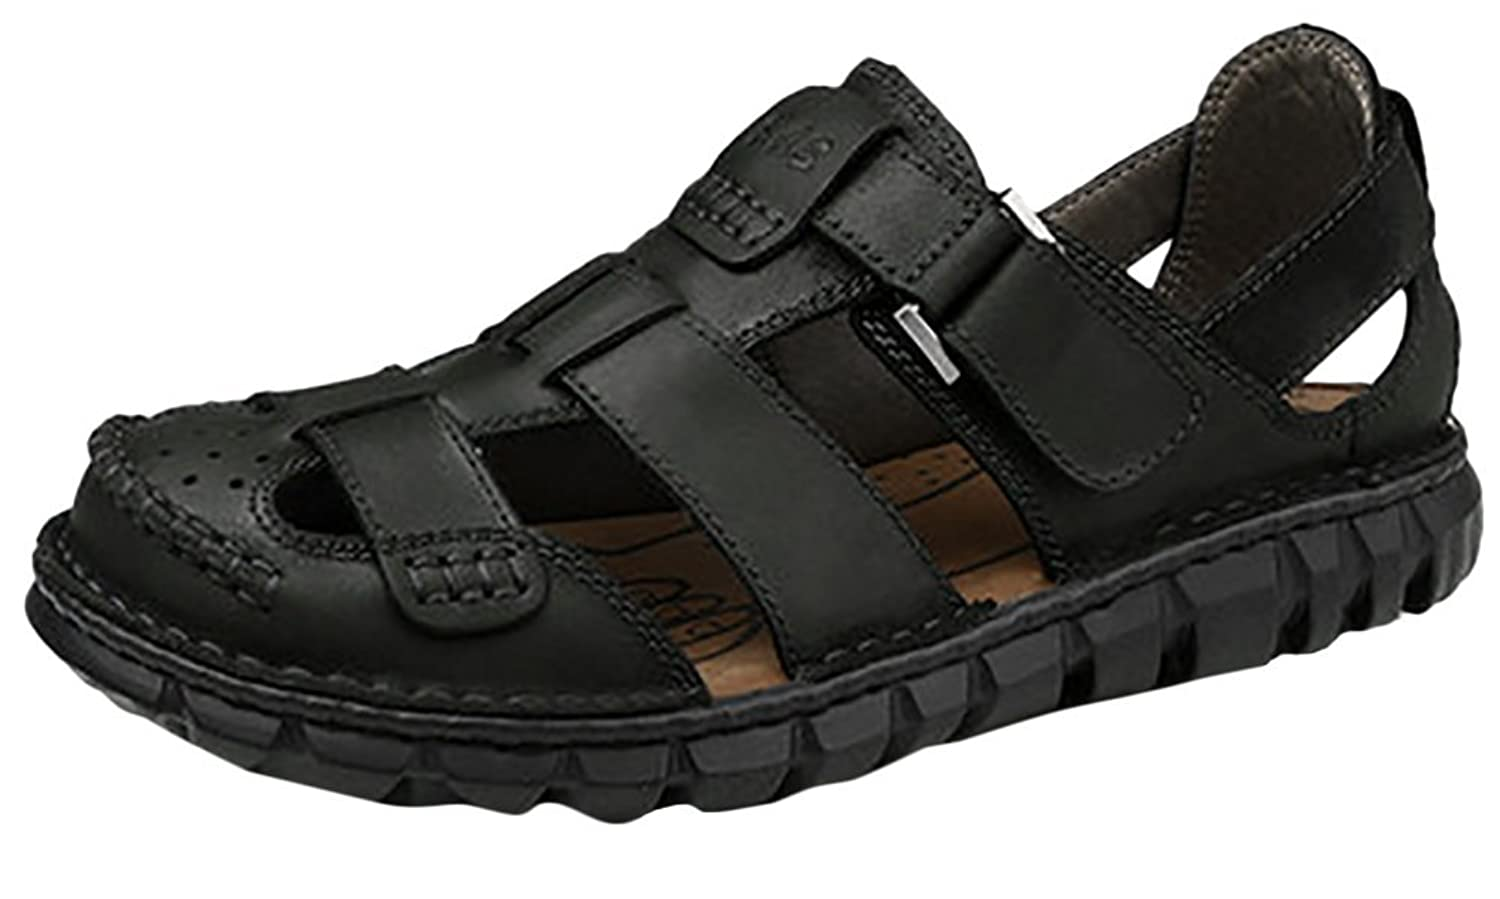 Ace Mens Real Leather Sports Water shoes Athletic Sandals